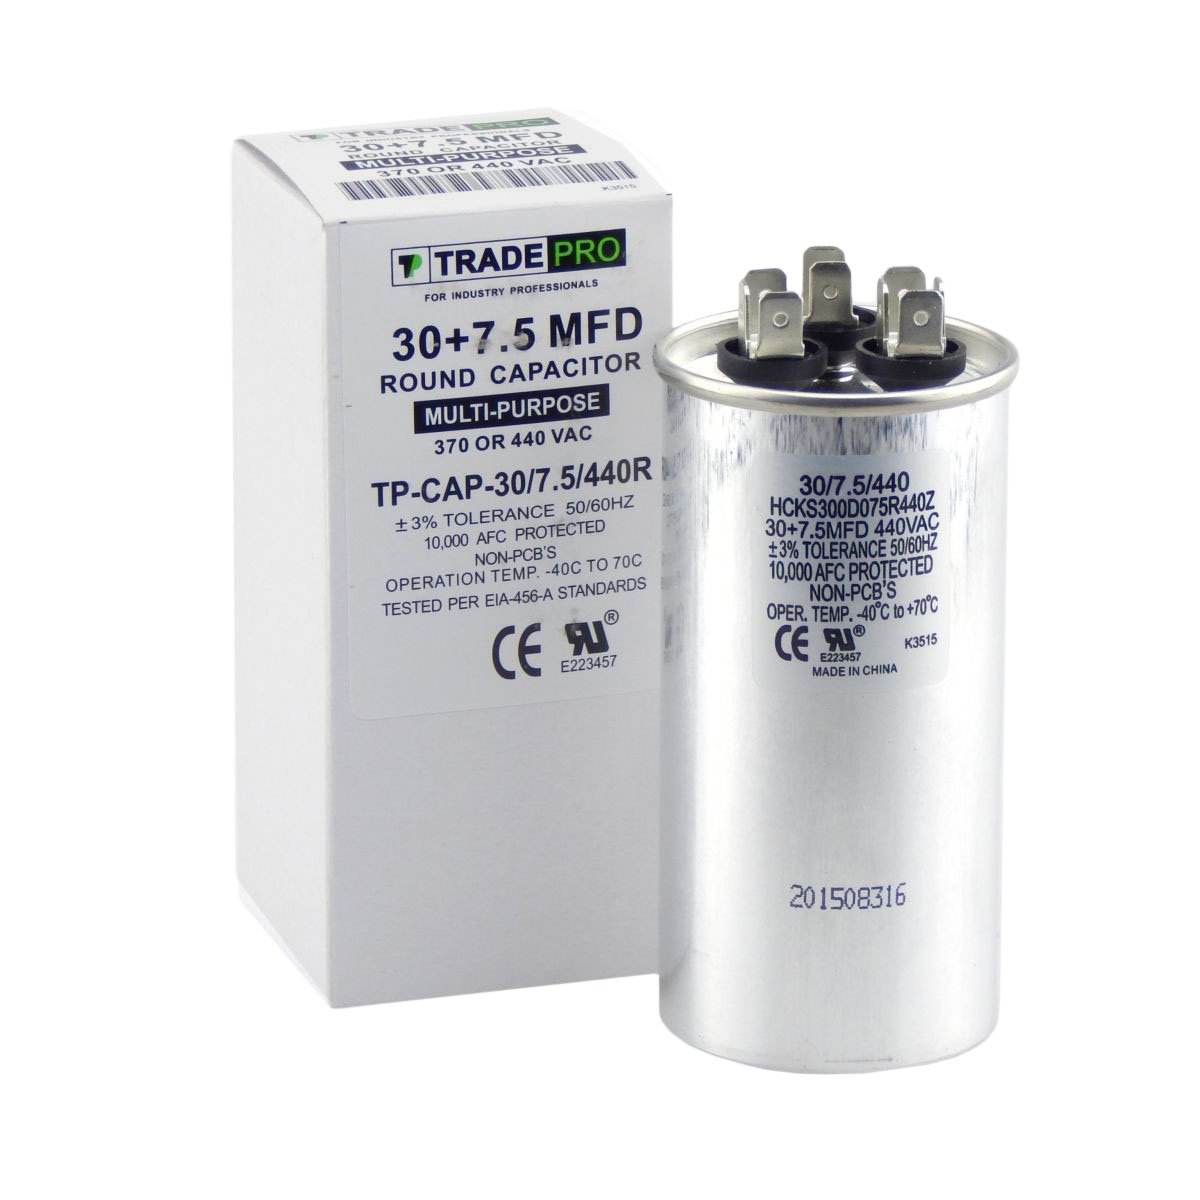 35 + 7.5 mfd Dual Capacitor, Industrial Grade Replacement for Central Air-Conditioners, Heat Pumps, Condenser Fan Motors, and Compressors. Round Multi-Purpose 370/440 Volt - by Trade Pro TradePro